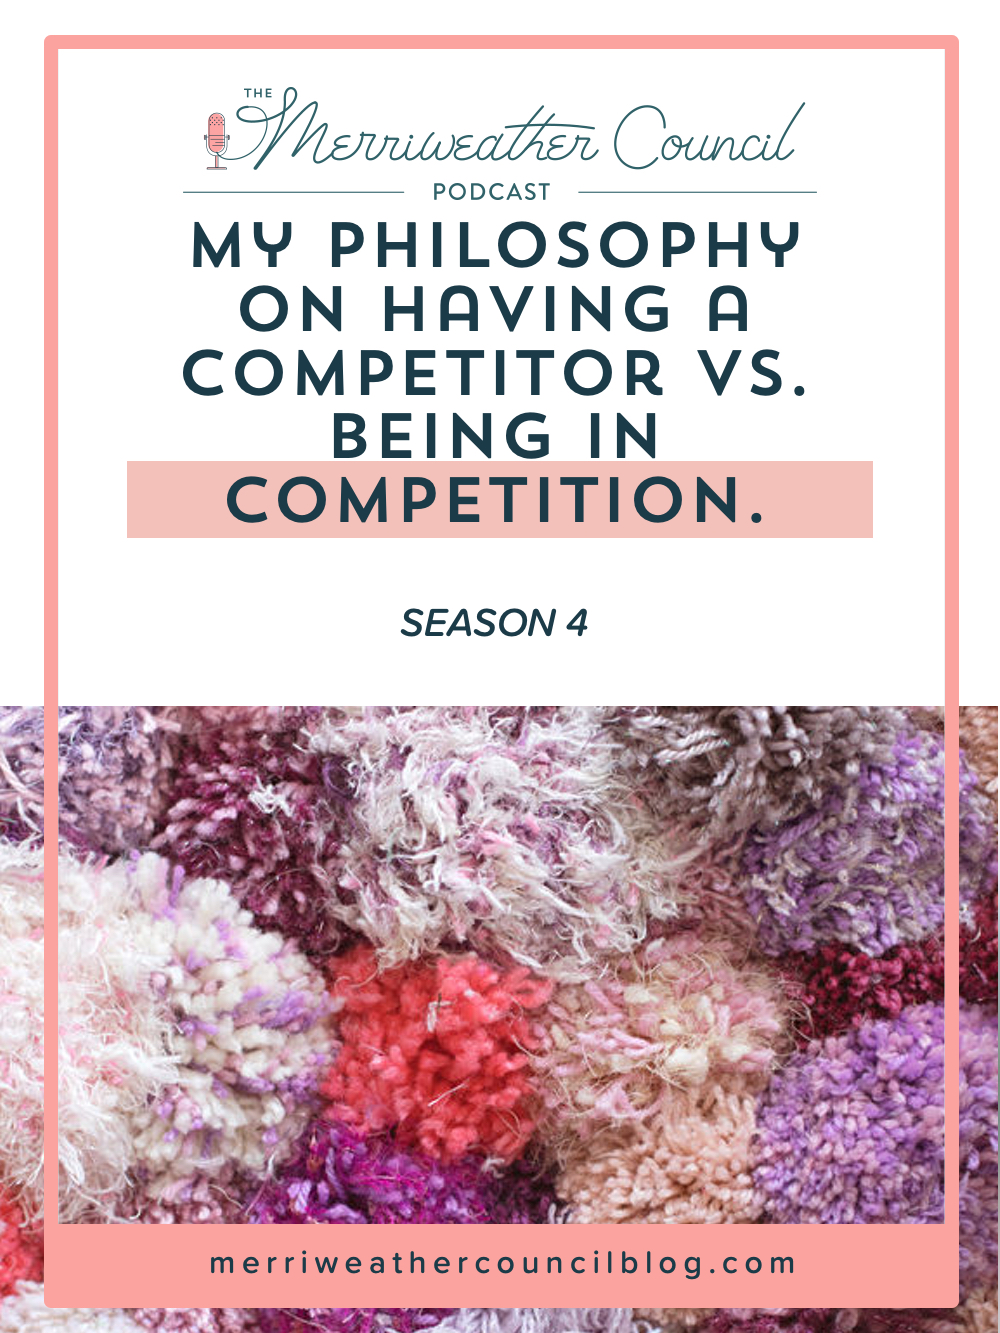 In this episode I let you in on my stance on the difference between competition versus competitors. I hope this helps expand your perspective a little! | The Merriweather Council Podcast